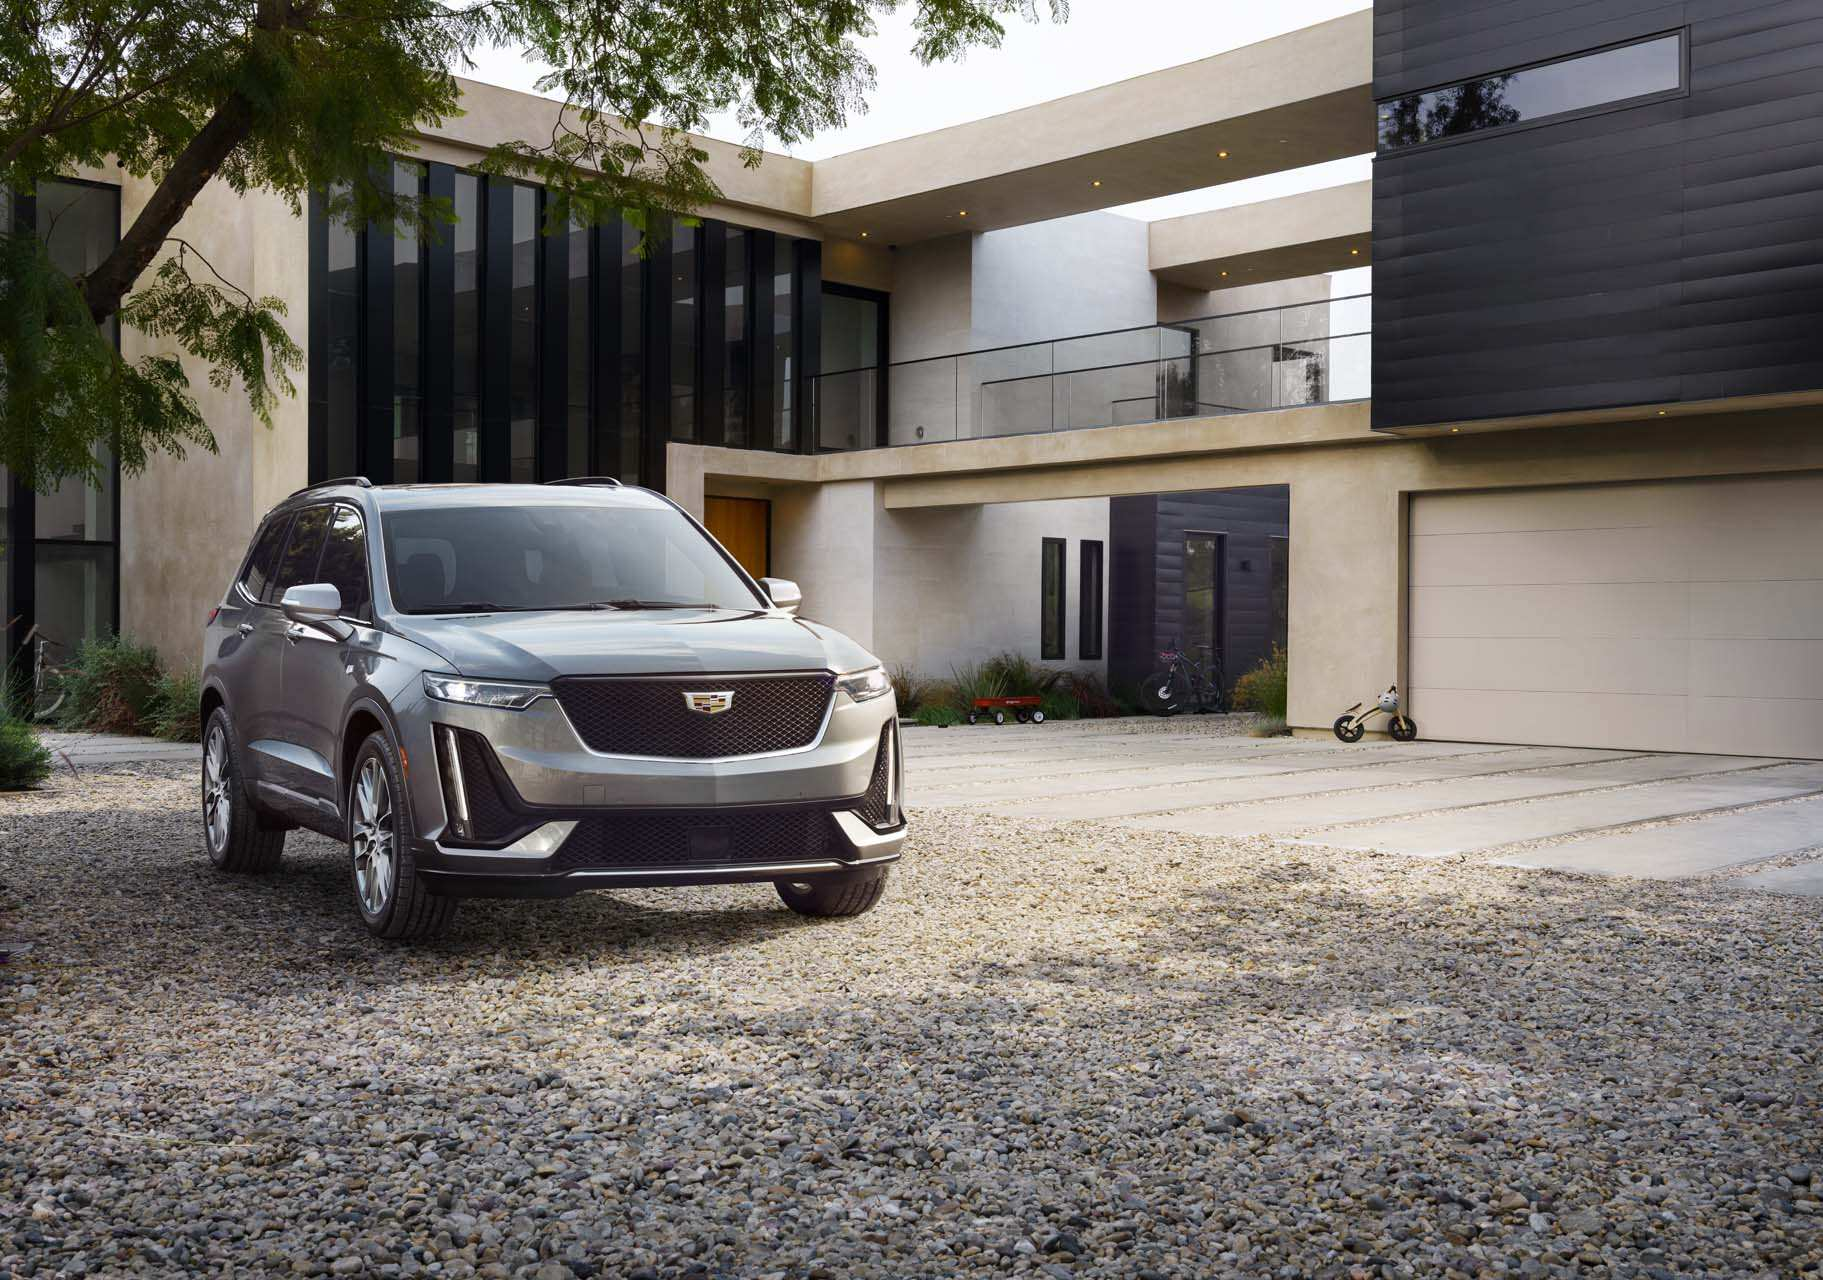 76 All New 2020 Cadillac Xt6 Review Reviews for 2020 Cadillac Xt6 Review